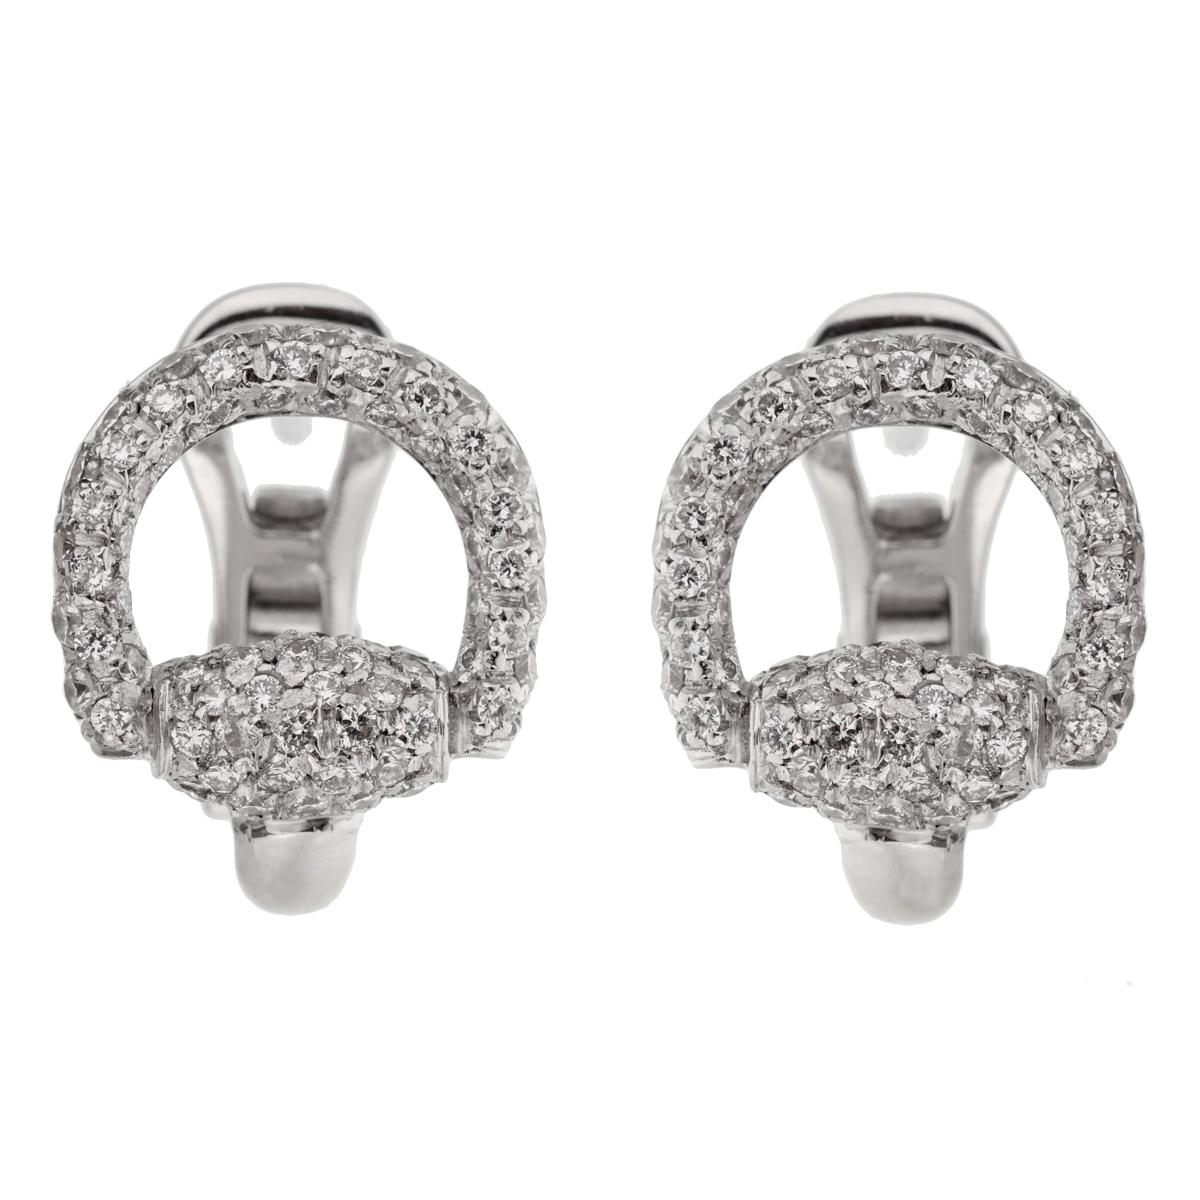 ed3ec8569 Diamond, Pearl and Antique Clip-on Earrings - 4,005 For Sale at 1stdibs